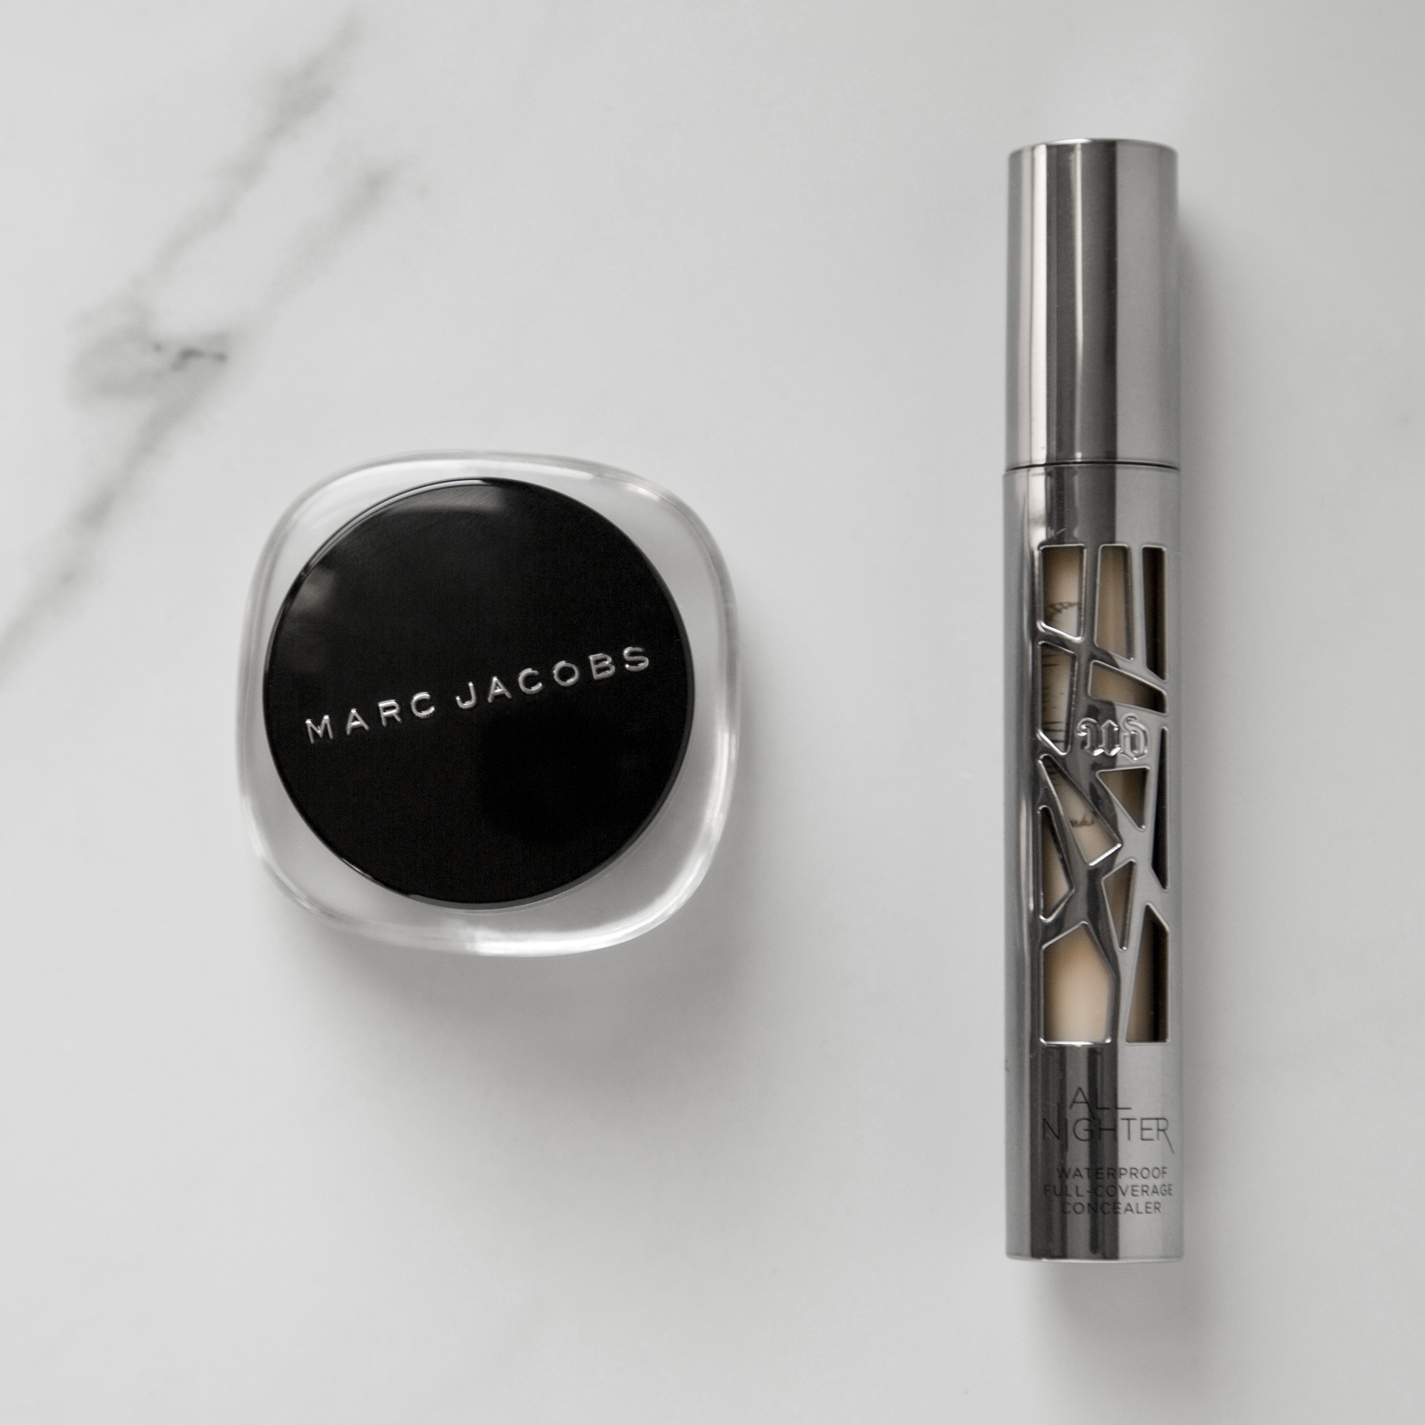 Marc Jacobs Re(marc)able Full Cover Concealer & Urban Decay All Nighter Waterproof Full-Coverage Concealer